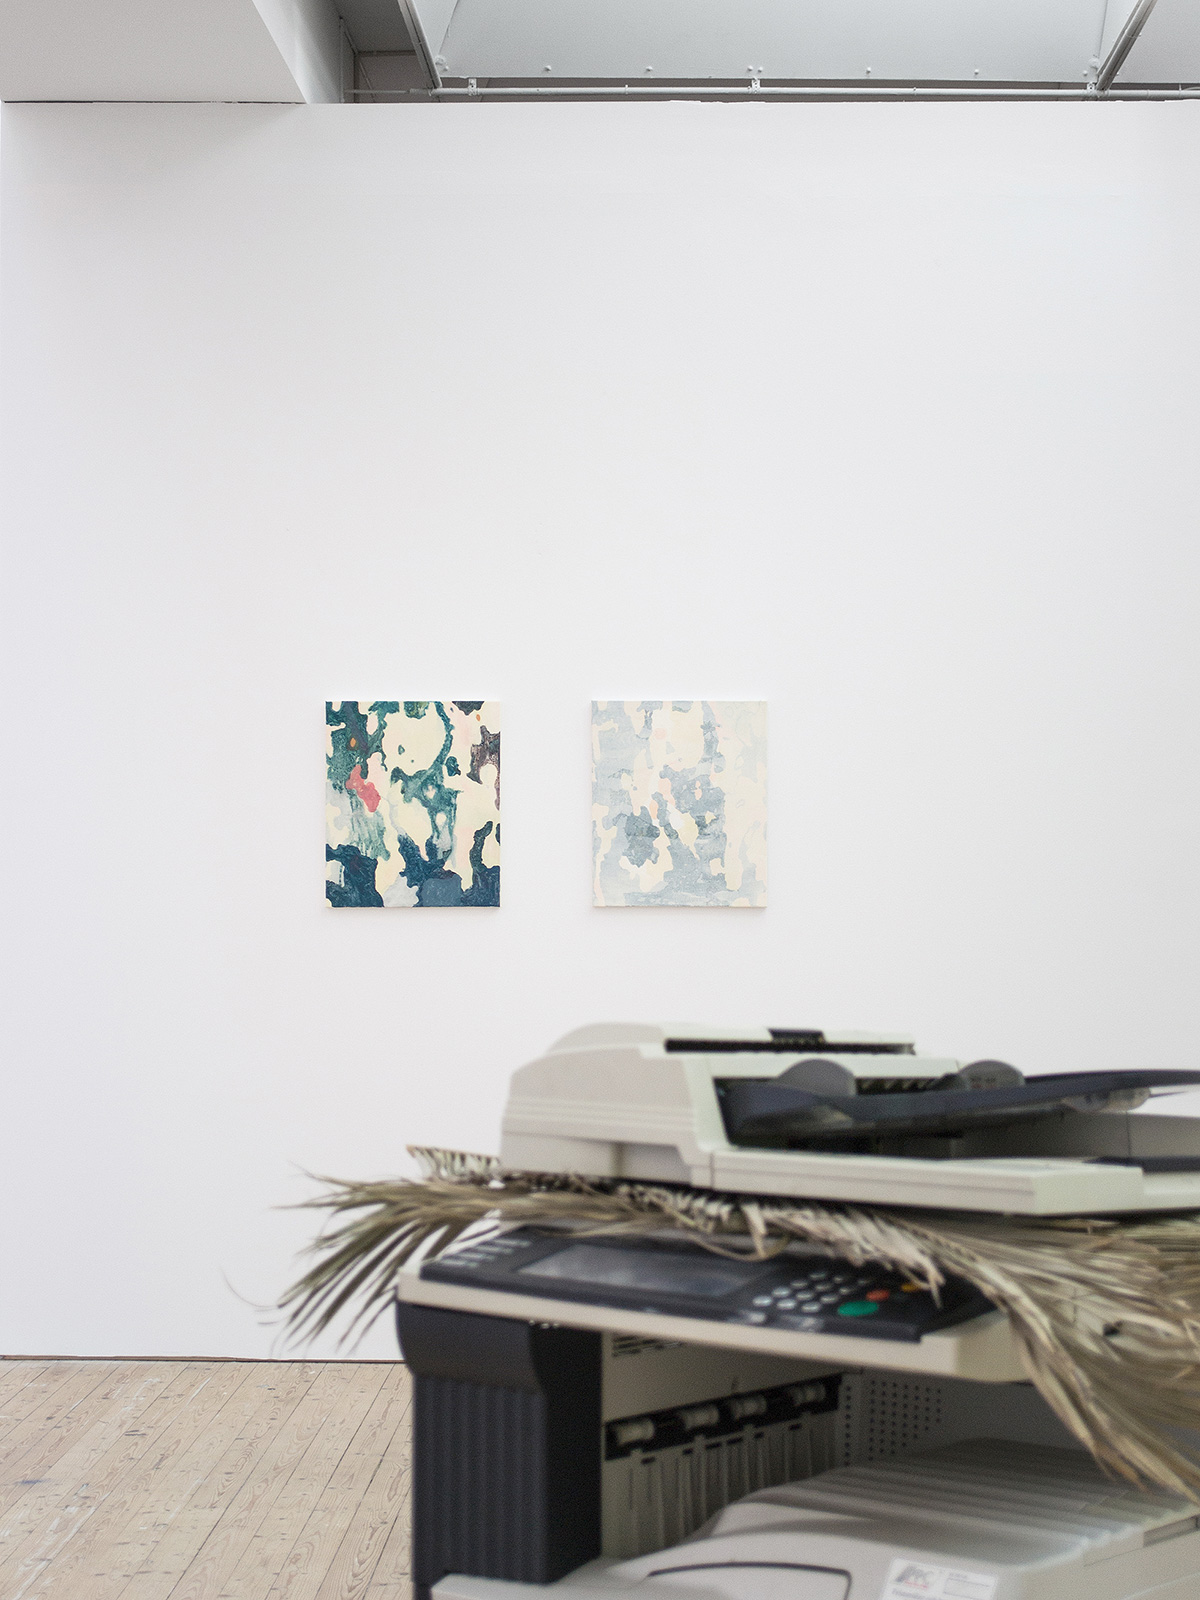 Copycat Underdog (2013), at Malmö Konsthall, Malmö, Sweden. Installation view. The Palm (1912) (2012), Bark I& Bark II 45 x 53 cm, acrylic on canvas.